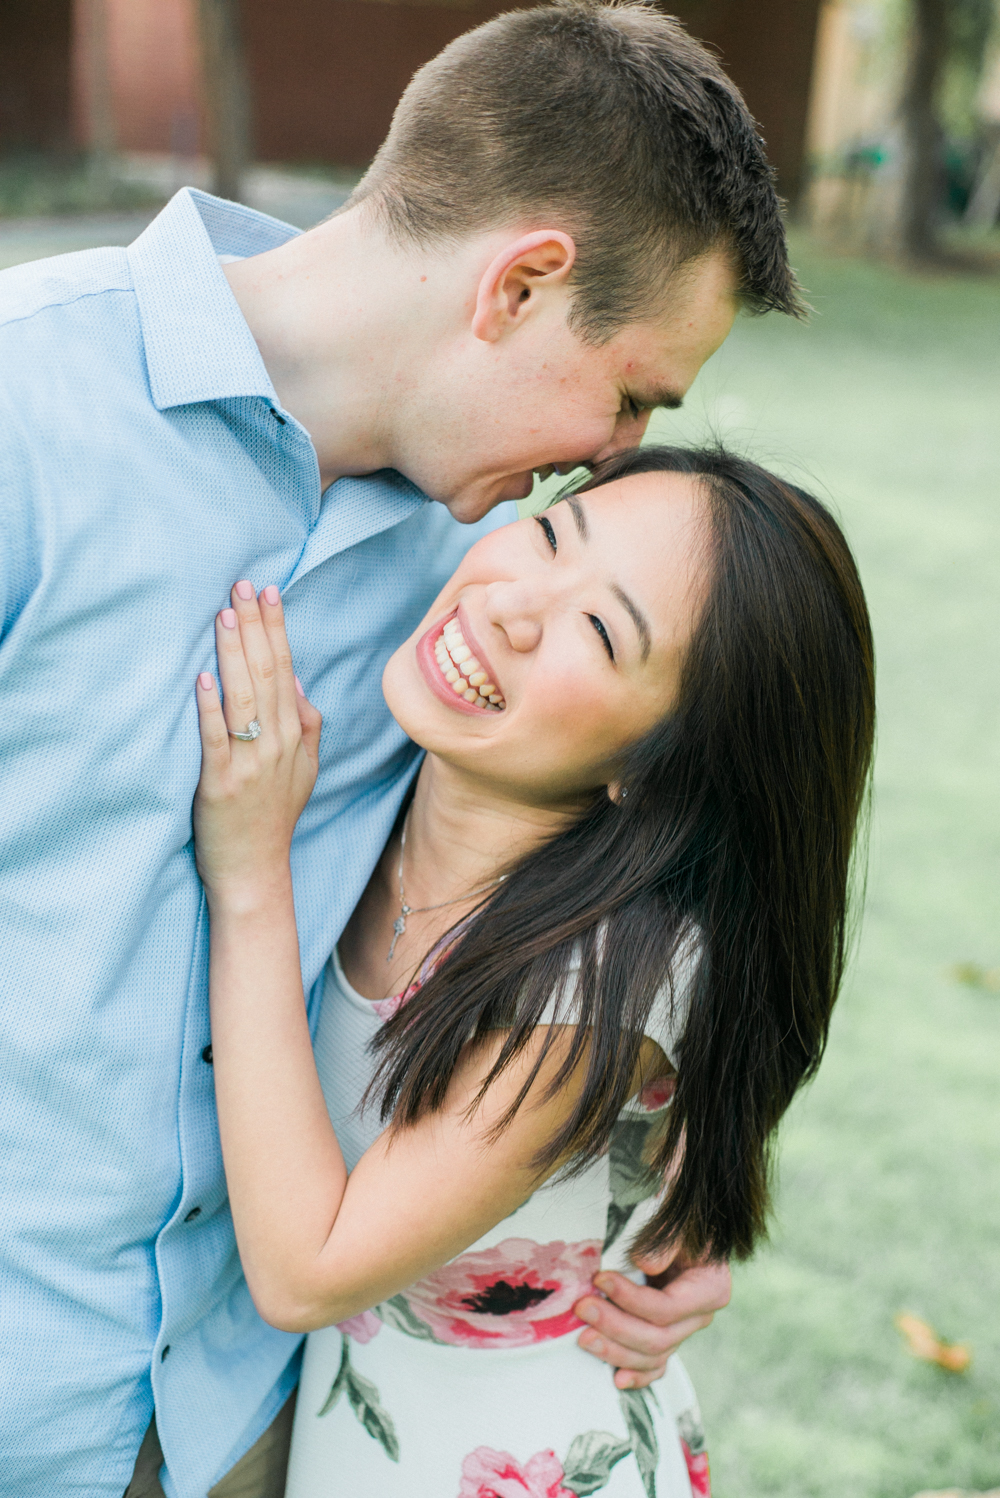 usc_engagement_session_los_angeles_wedding_photography-2.jpg